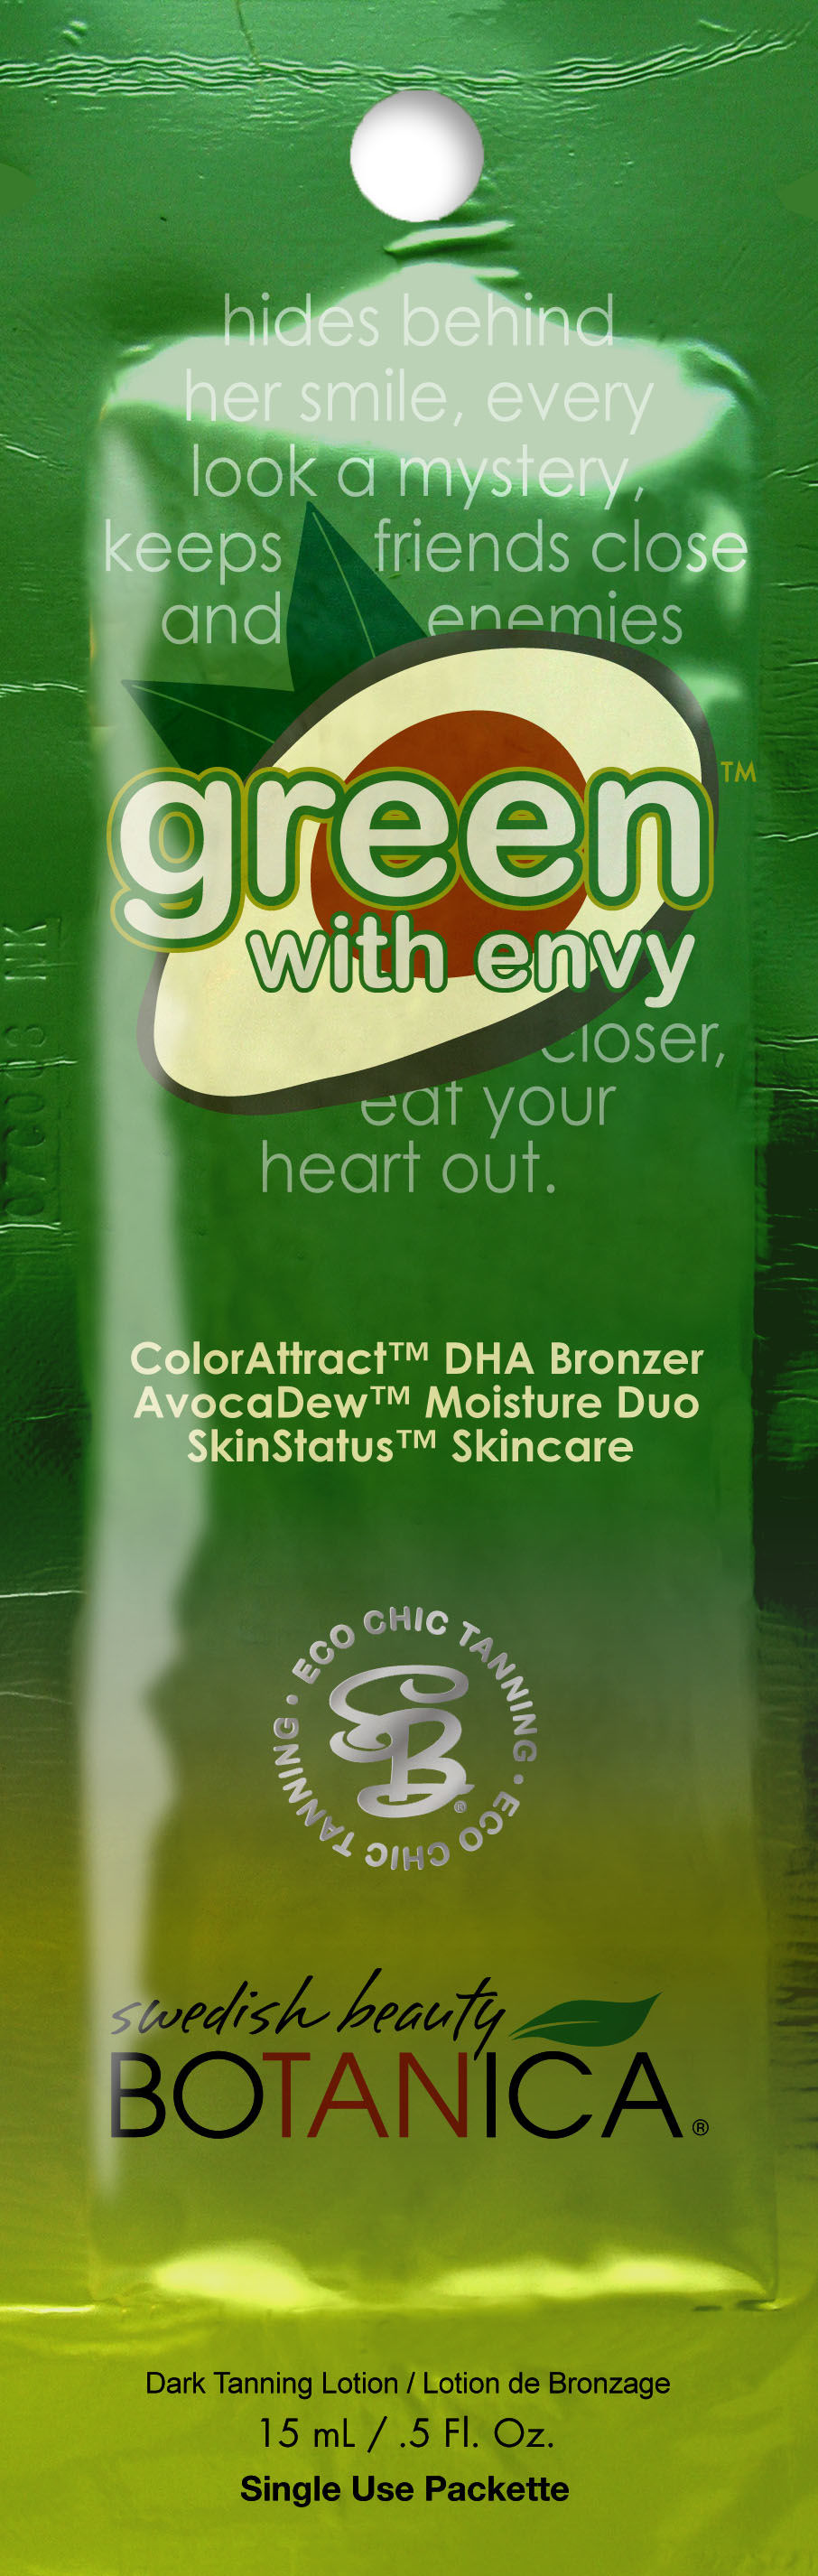 Green with Envy™ DHA Bronzing Blend with AvocaDew™ Moisture Duo